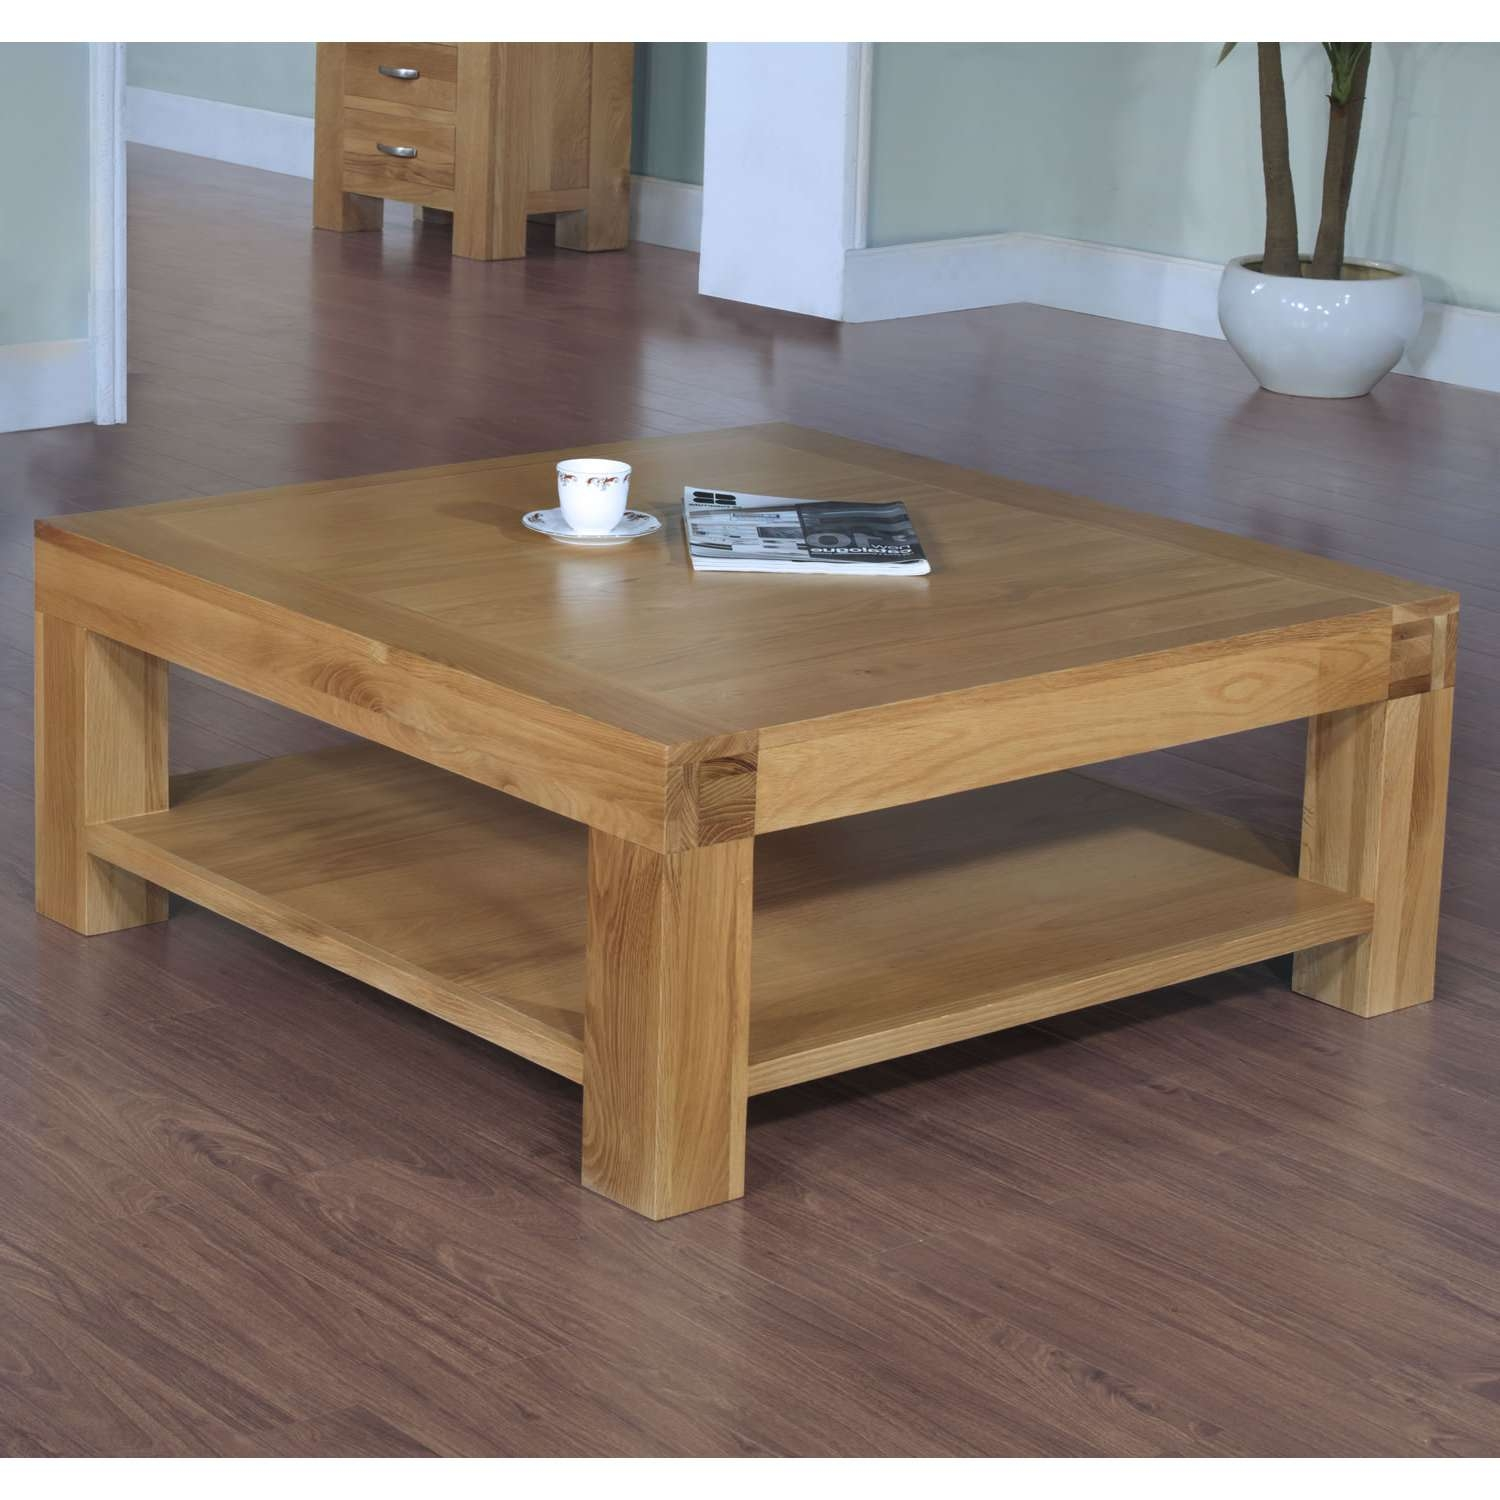 Most Recently Released Extra Large Square Coffee Tables With Regard To Coffee Table : Amazing Low Coffee Table Extra Large Square Coffee (View 16 of 20)